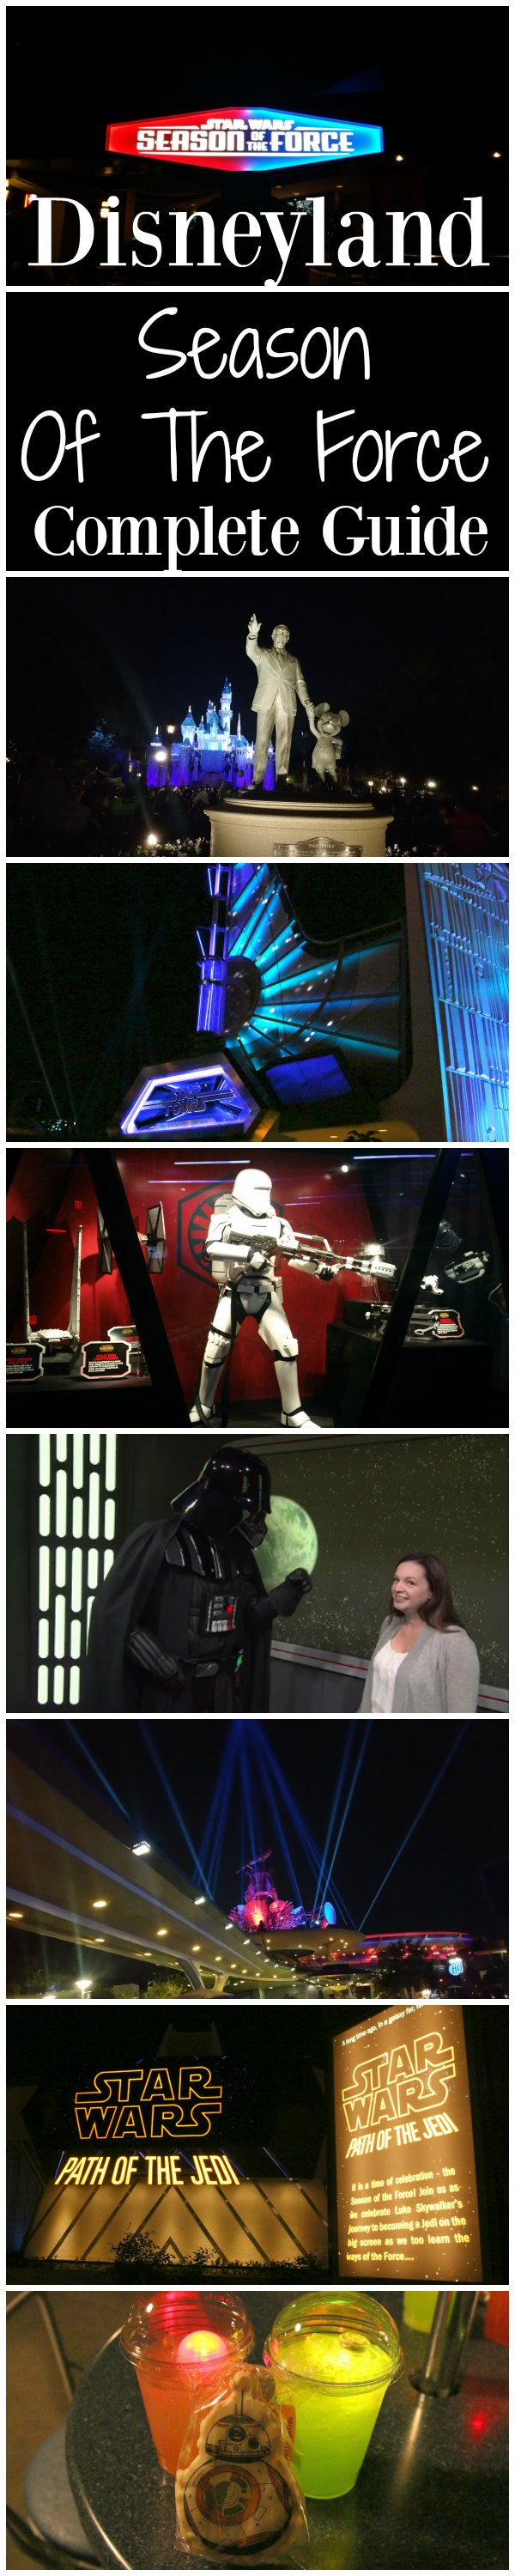 the complete guide to season of the force at disneyland